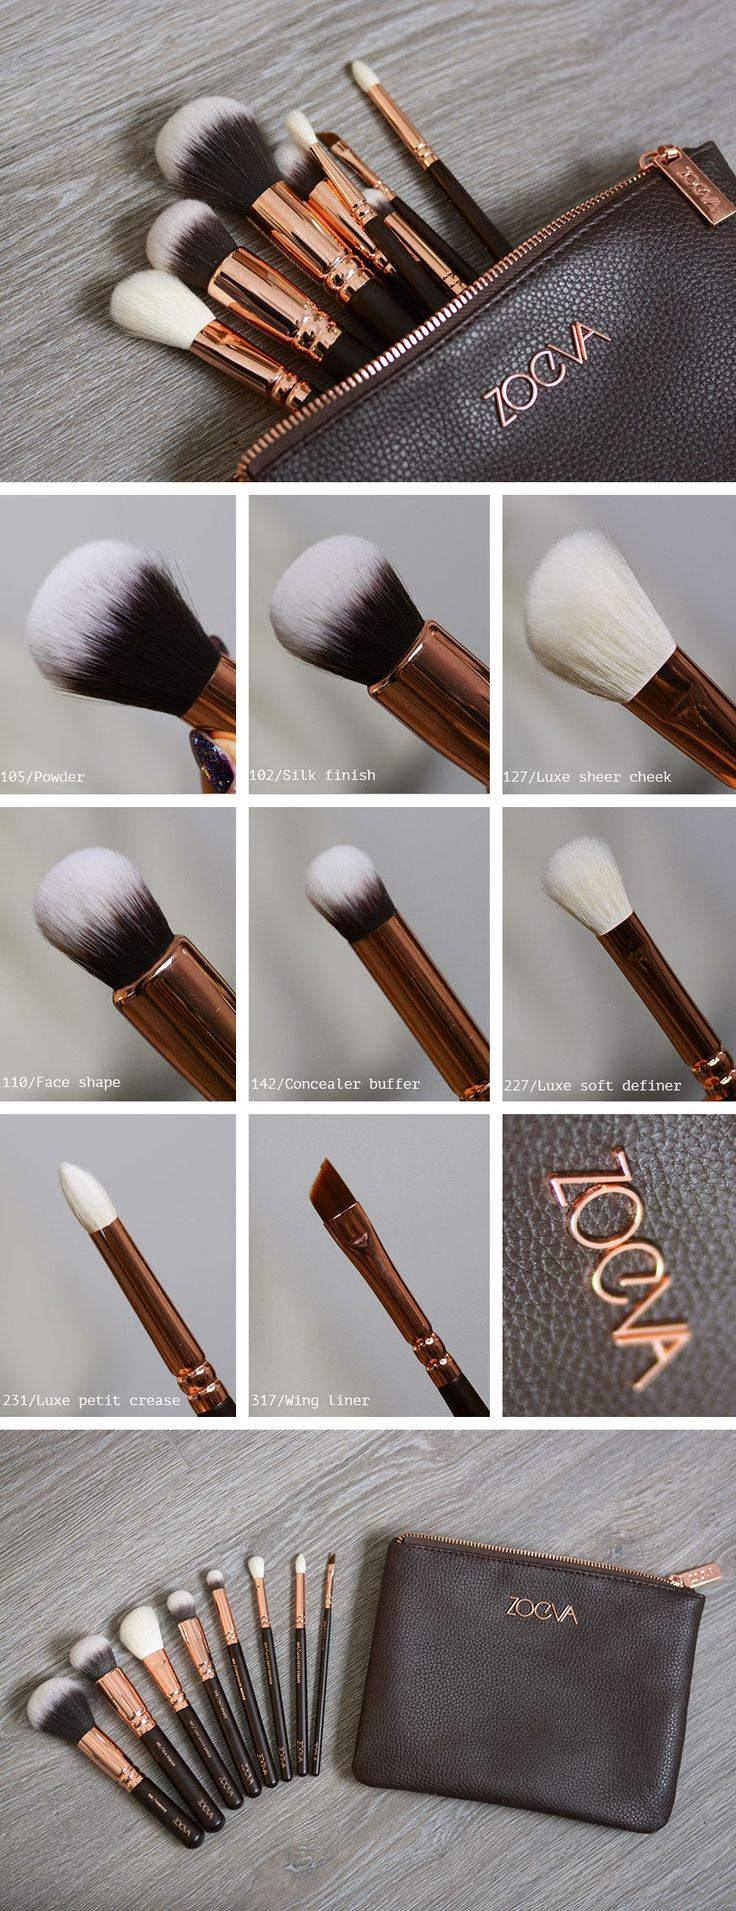 Rose gold luxury set by #ZOEVA - perfection #makeup #brushes